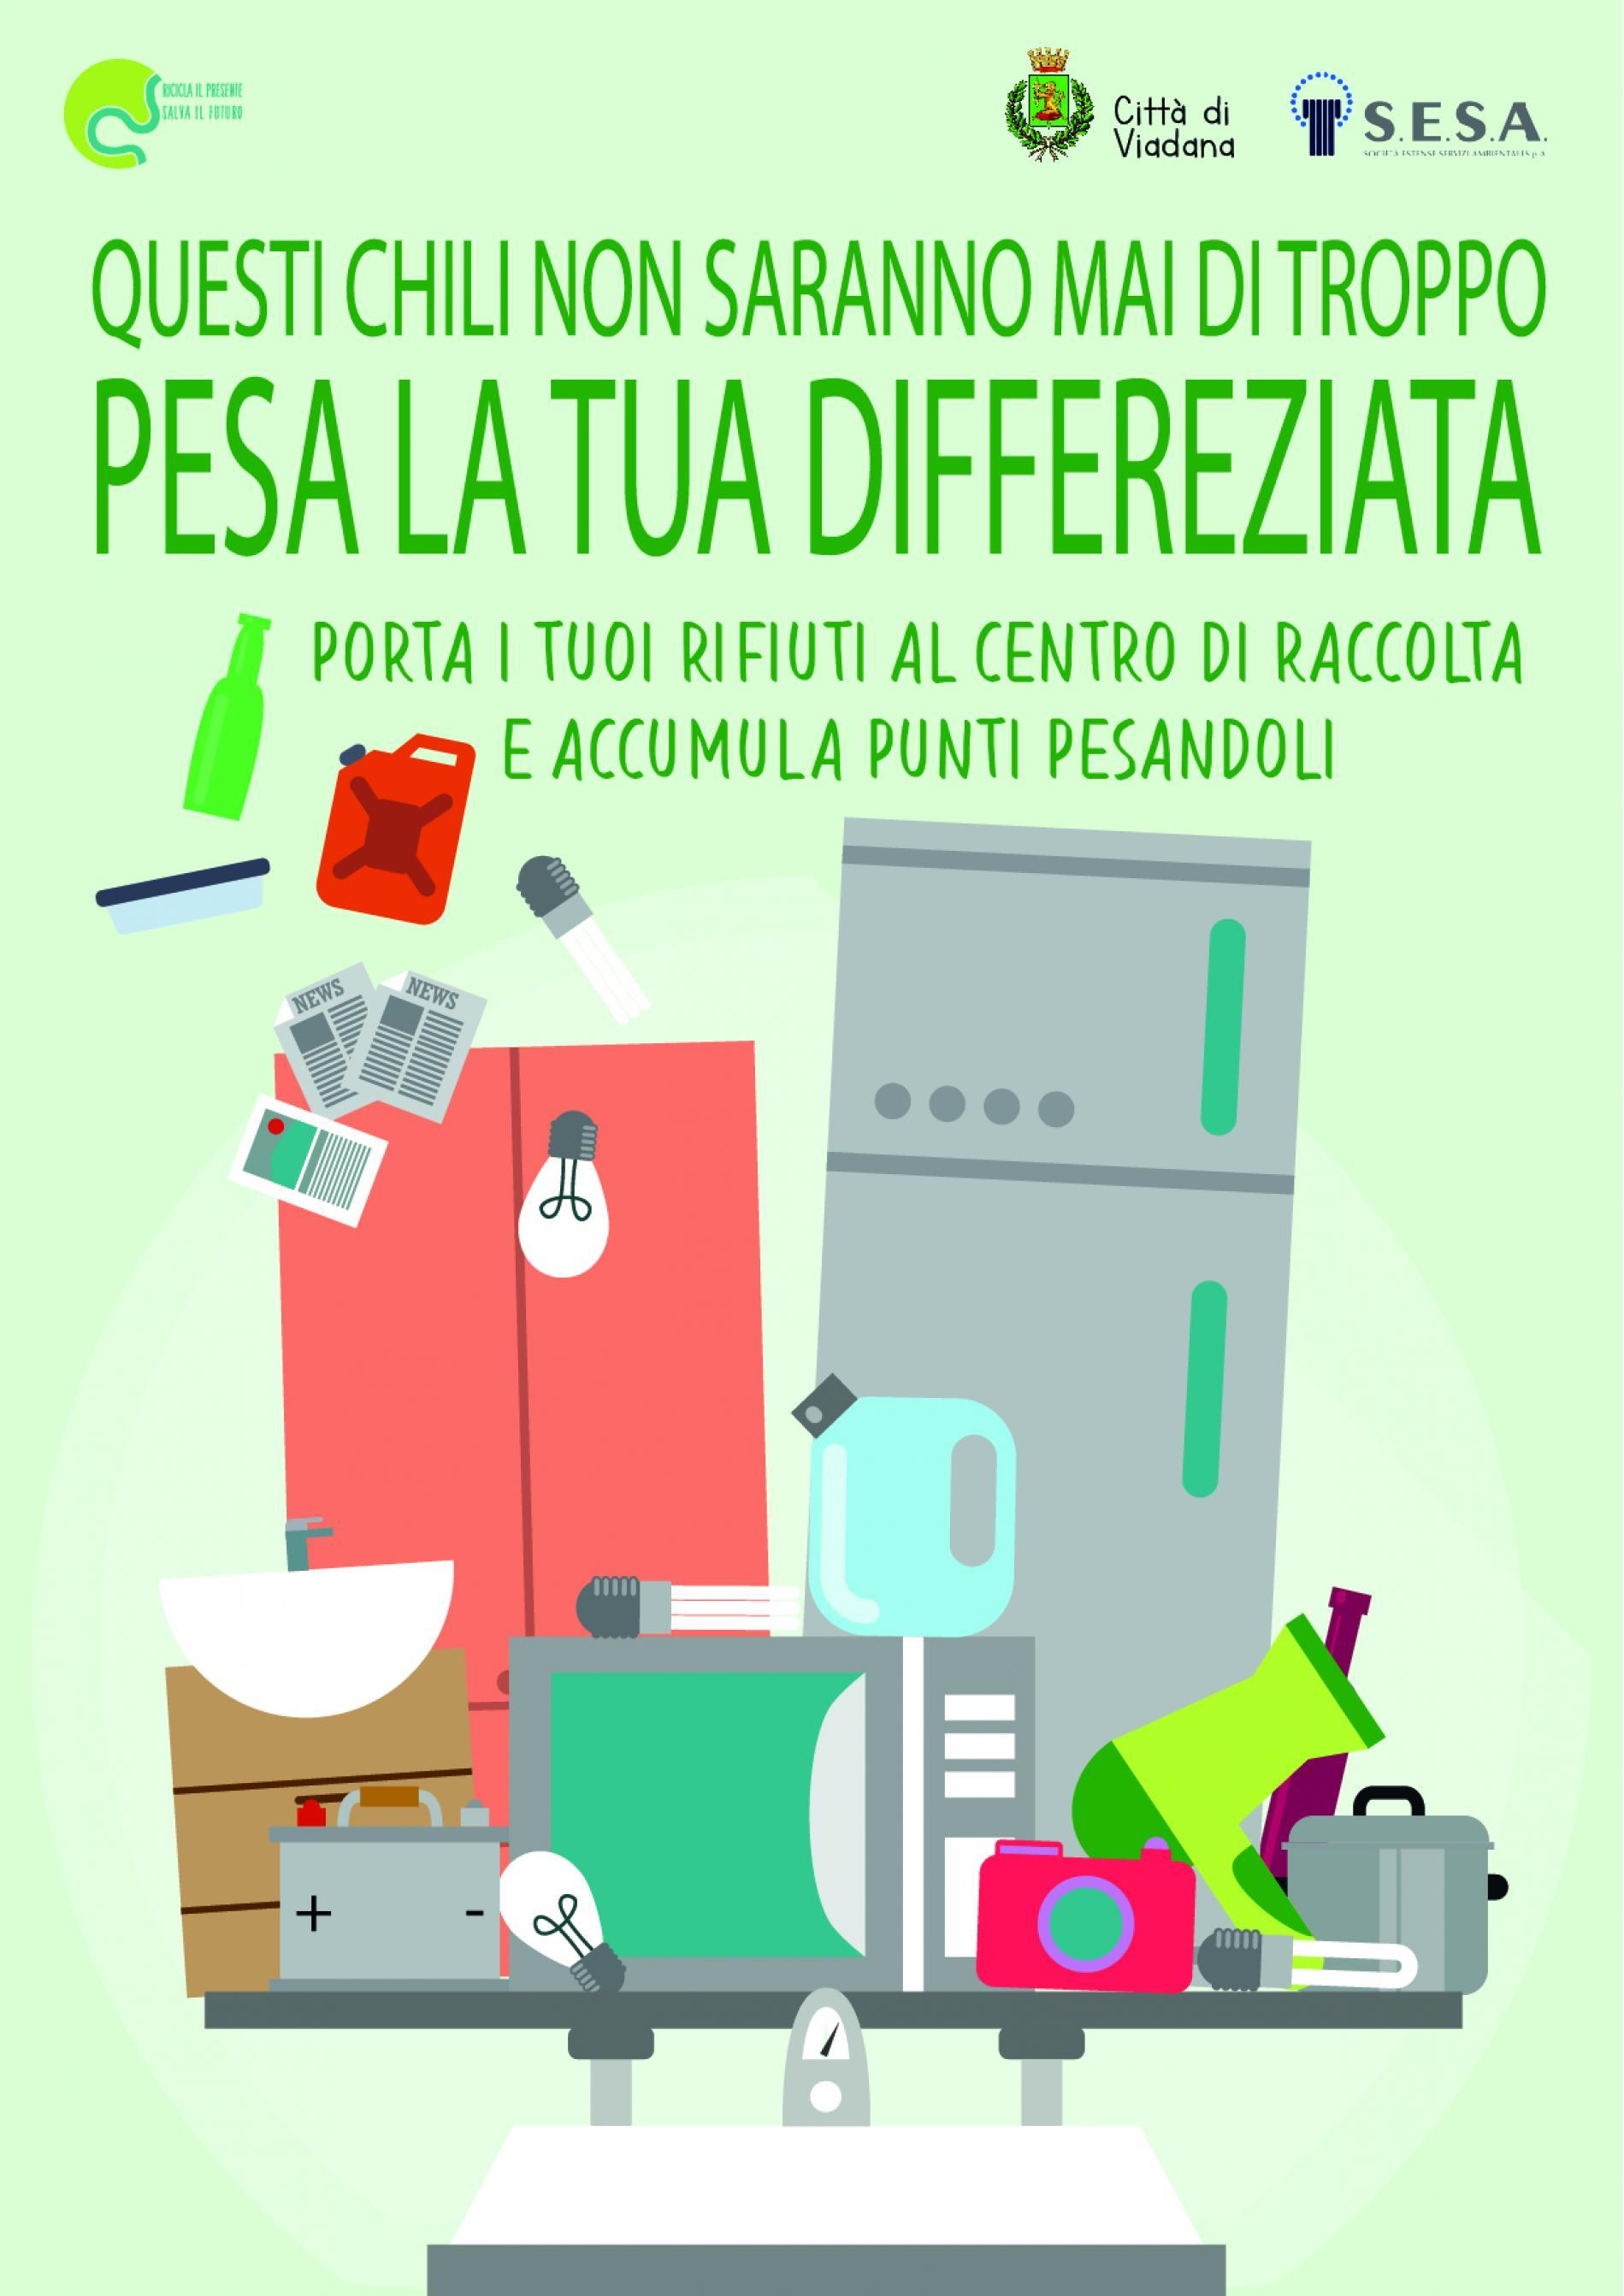 PESA LA TUA DIFFERENZIATA